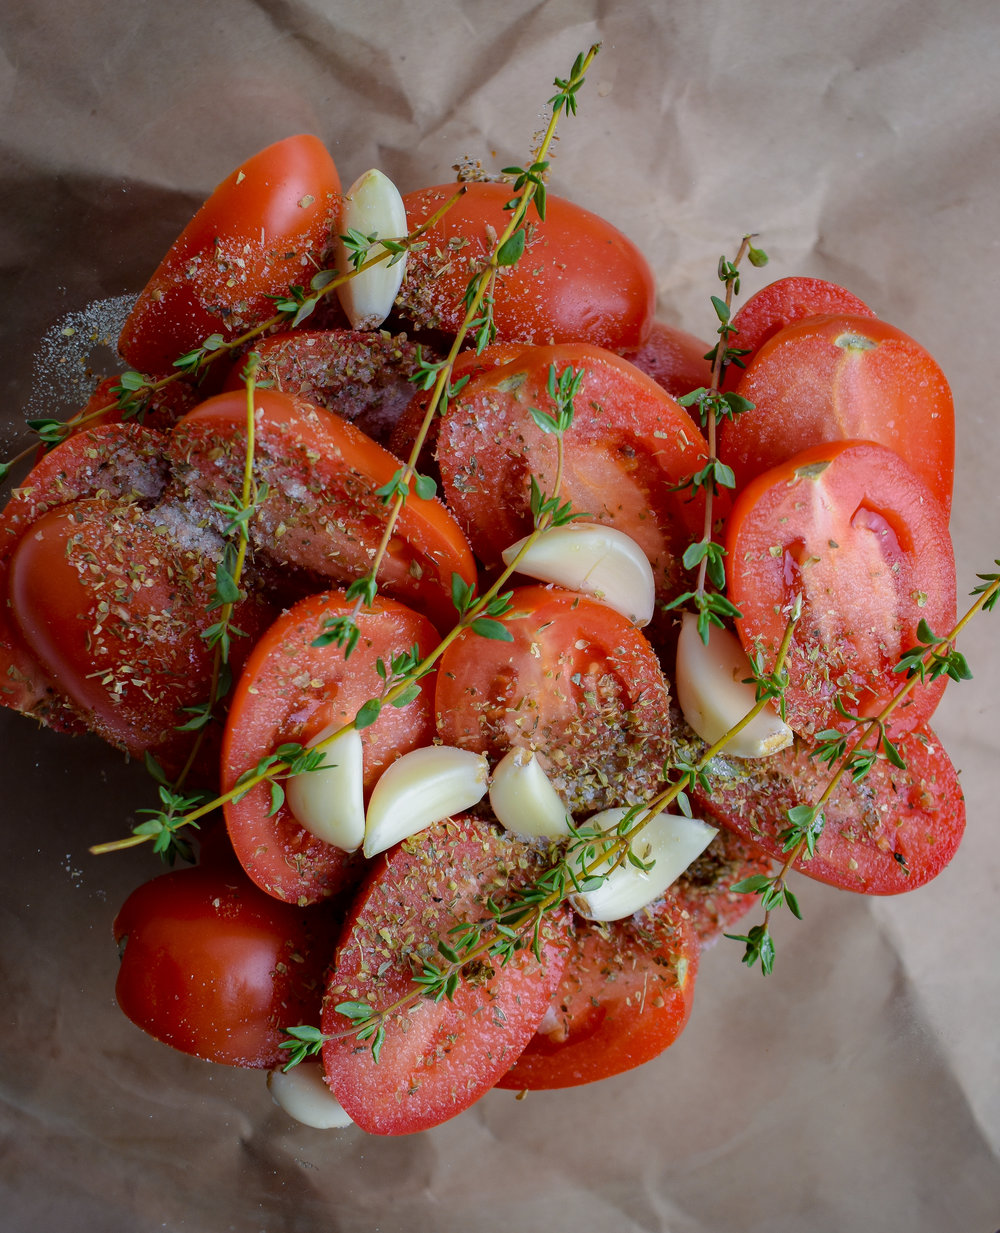 2. Mix with hands roma tomatoes with garlic cloves, sprigs of thyme, olive oil, and sprinkle with salt + pepper.